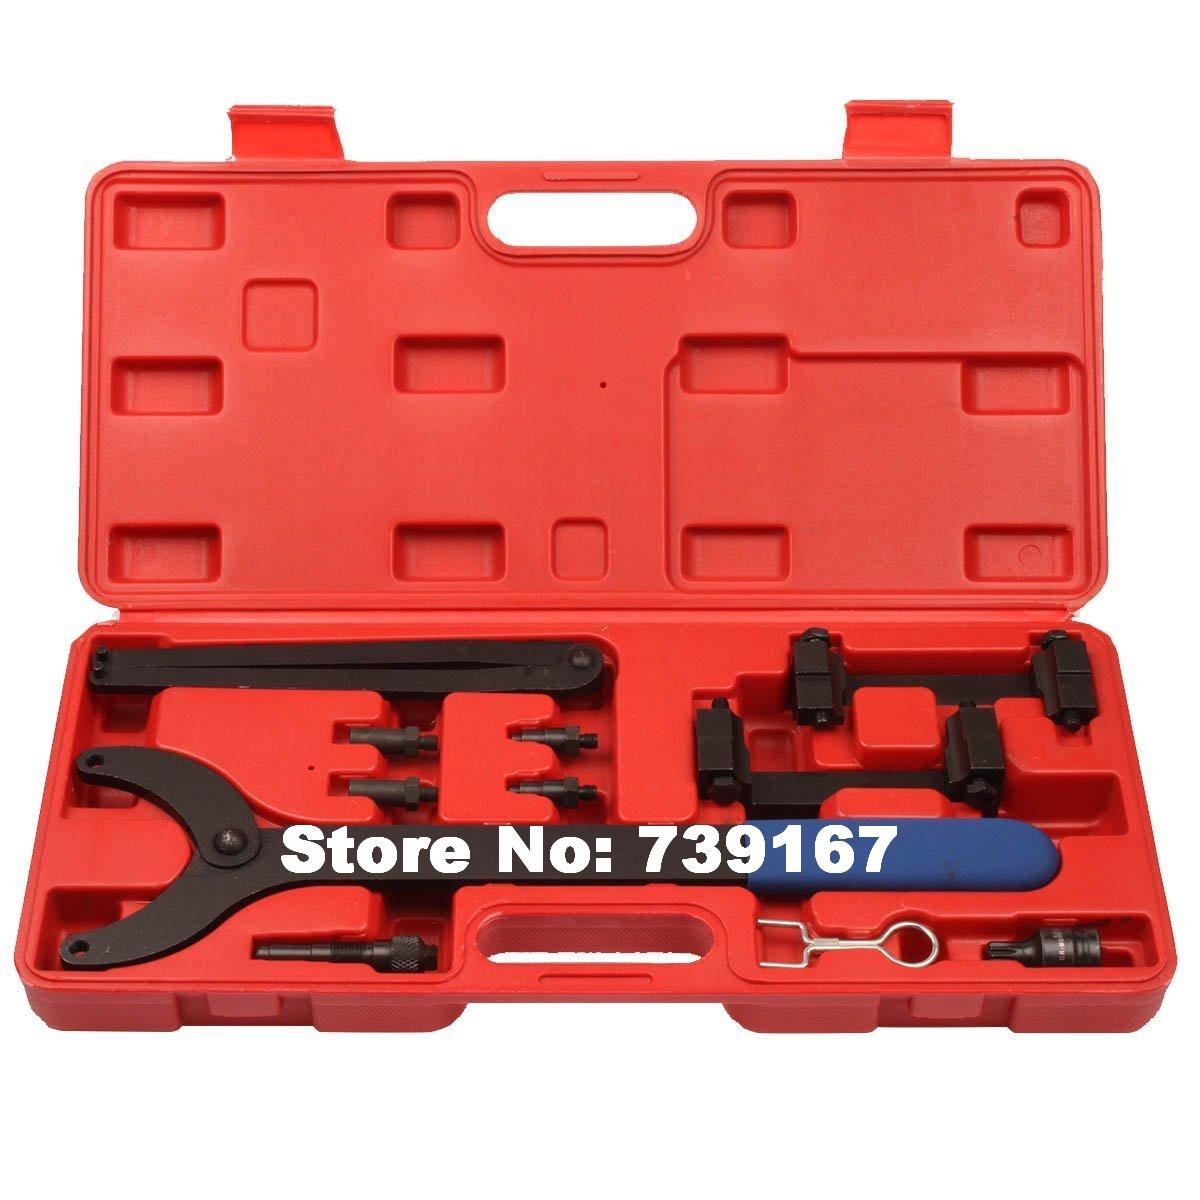 Auto Engine Timing Camshaft Locking Alignment Removal Repair About 001 Circuit Board Plcc Ic Extractor Puller Tool For Garage Tools Audi A2 A3 A4 A6 A8 24 32l V6 Fsi St0169